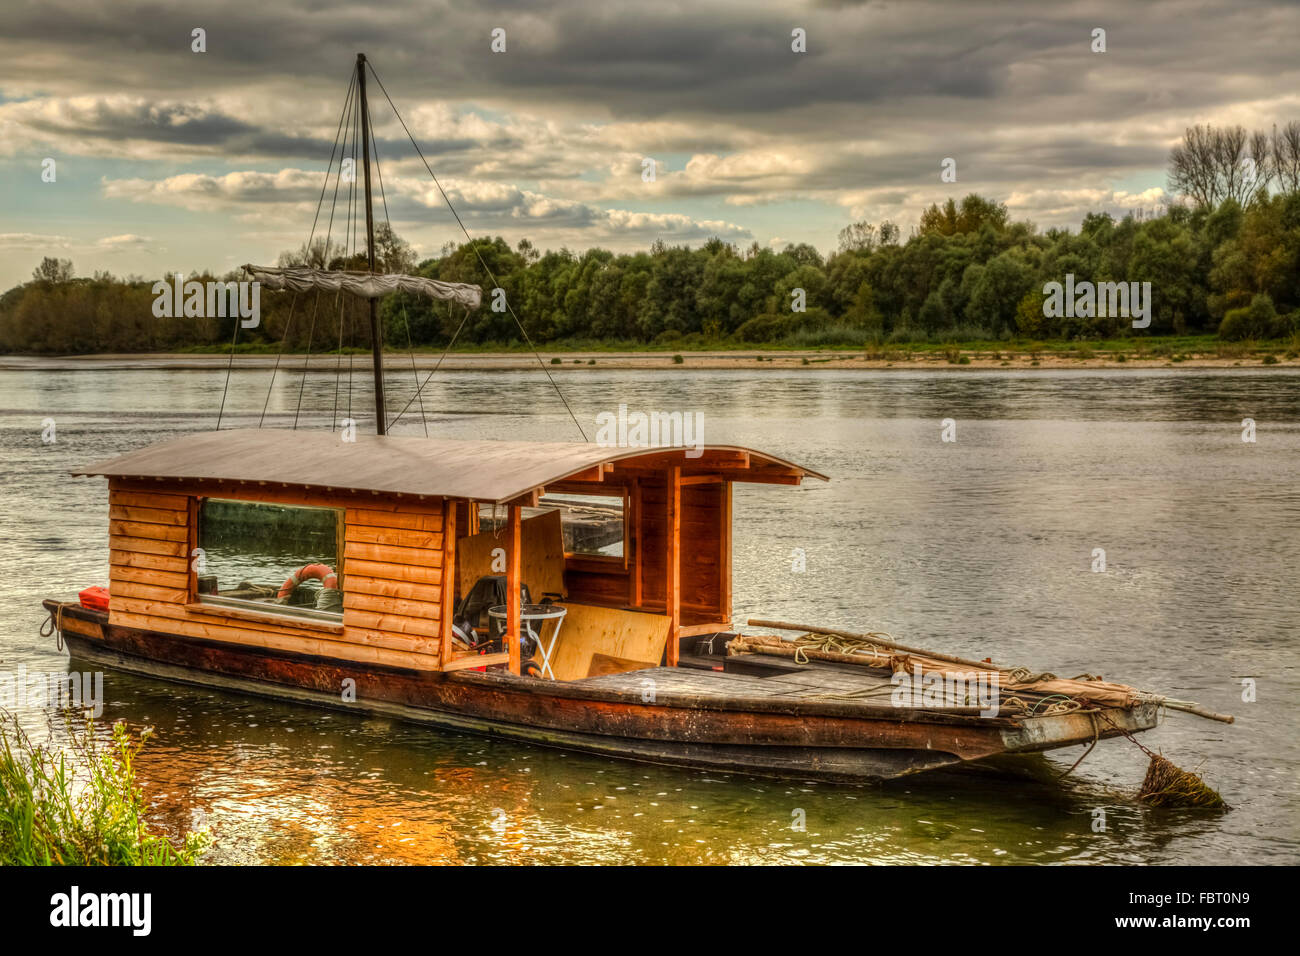 Wooden boat on the Loire Valley in France during an autumn evening day. Stock Photo